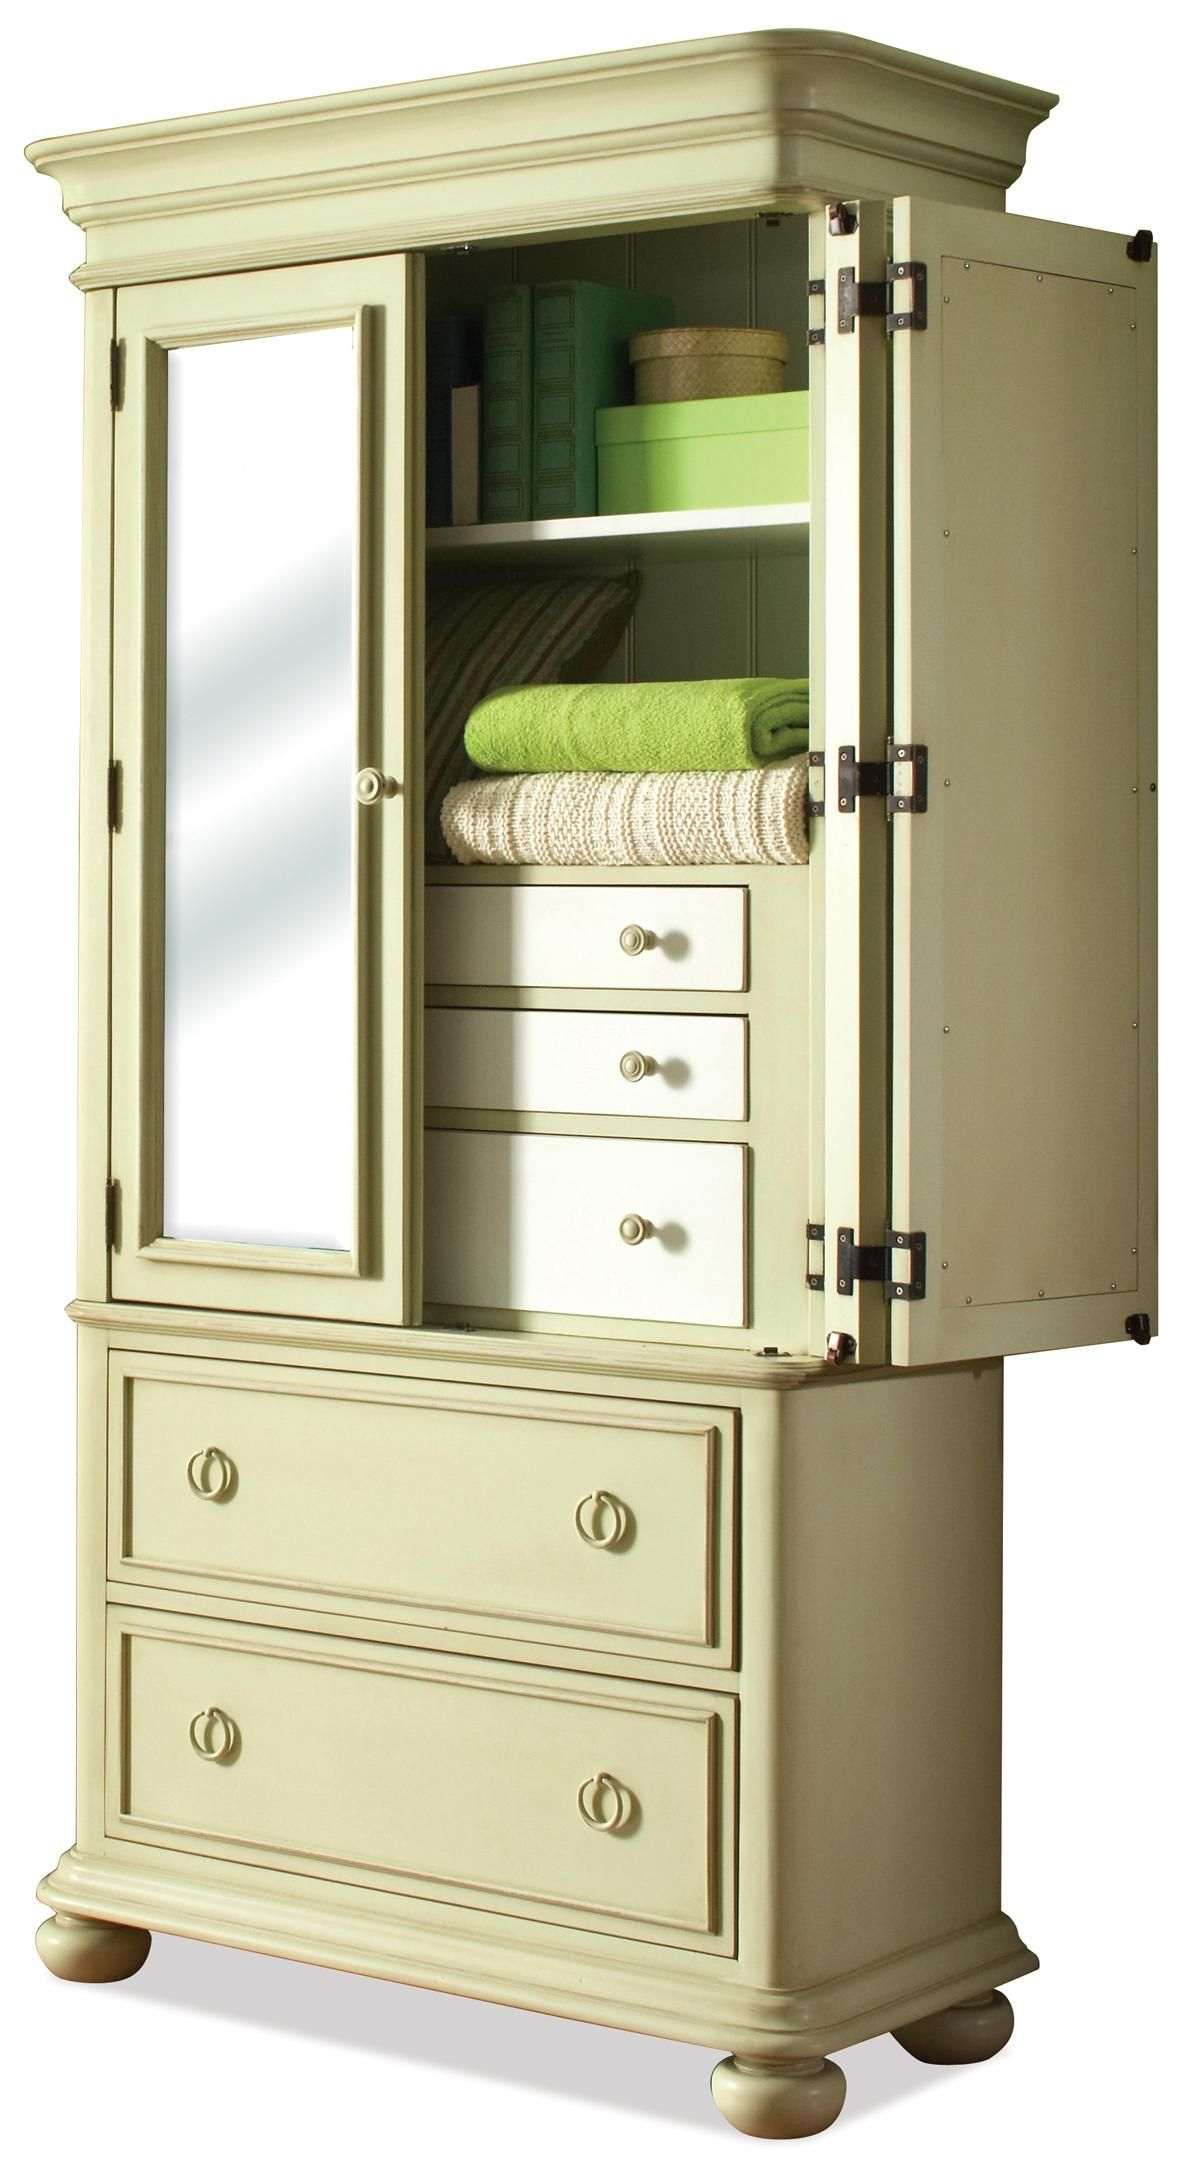 Placid Cove Mirrored 2 Door Armoire with 2 Drawers by Riverside Furniture - Belfort Furniture - Armoire Washington DC, Northern Virginia (NoVA), Maryland, and Dulles, VA